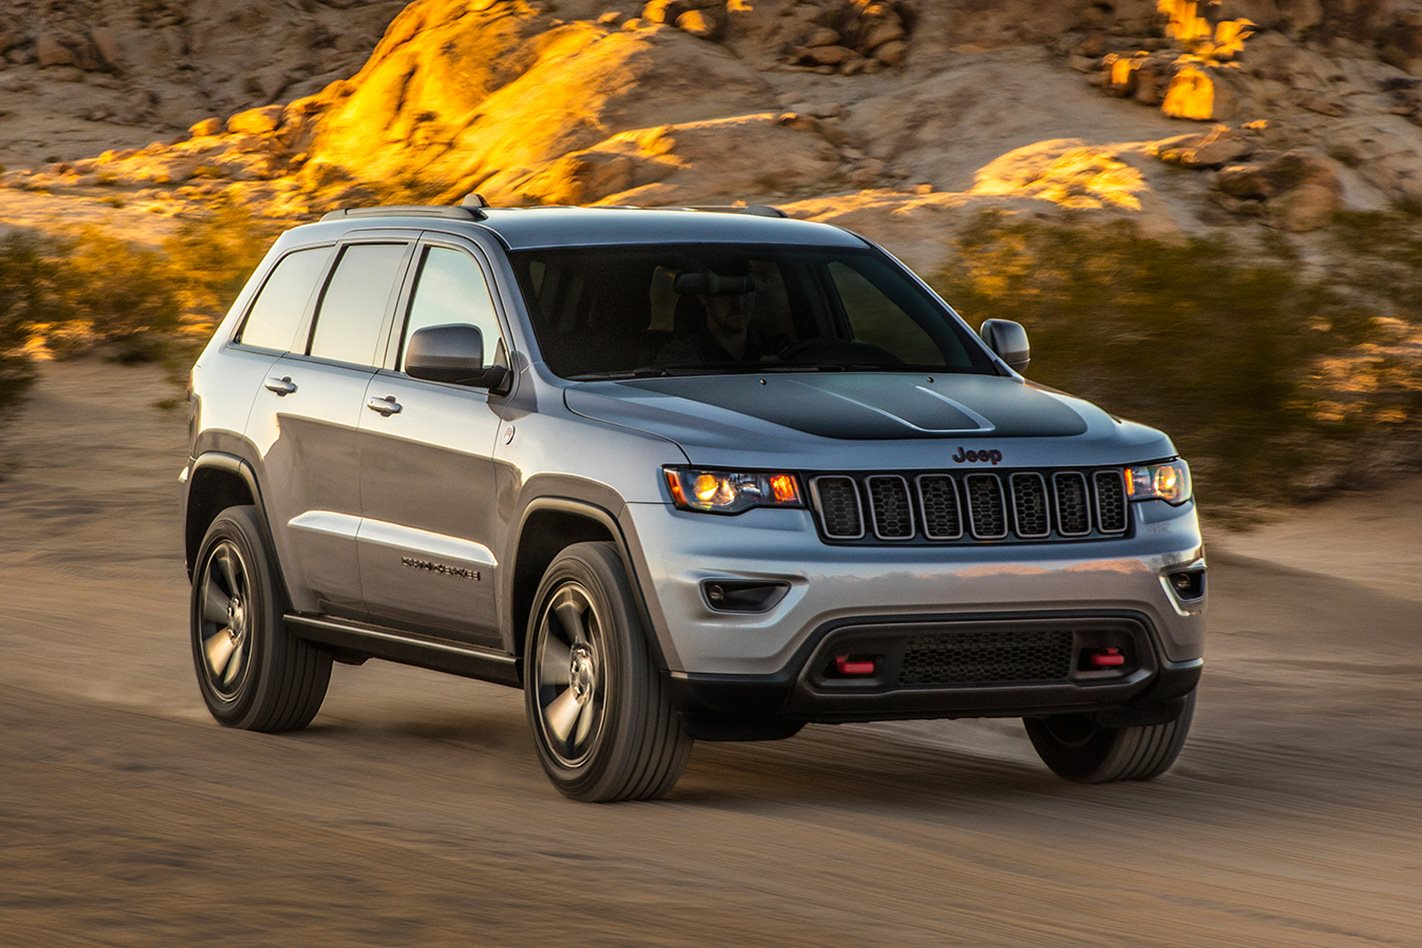 2017 jeep grand cherokee trailhawk review wheels. Black Bedroom Furniture Sets. Home Design Ideas